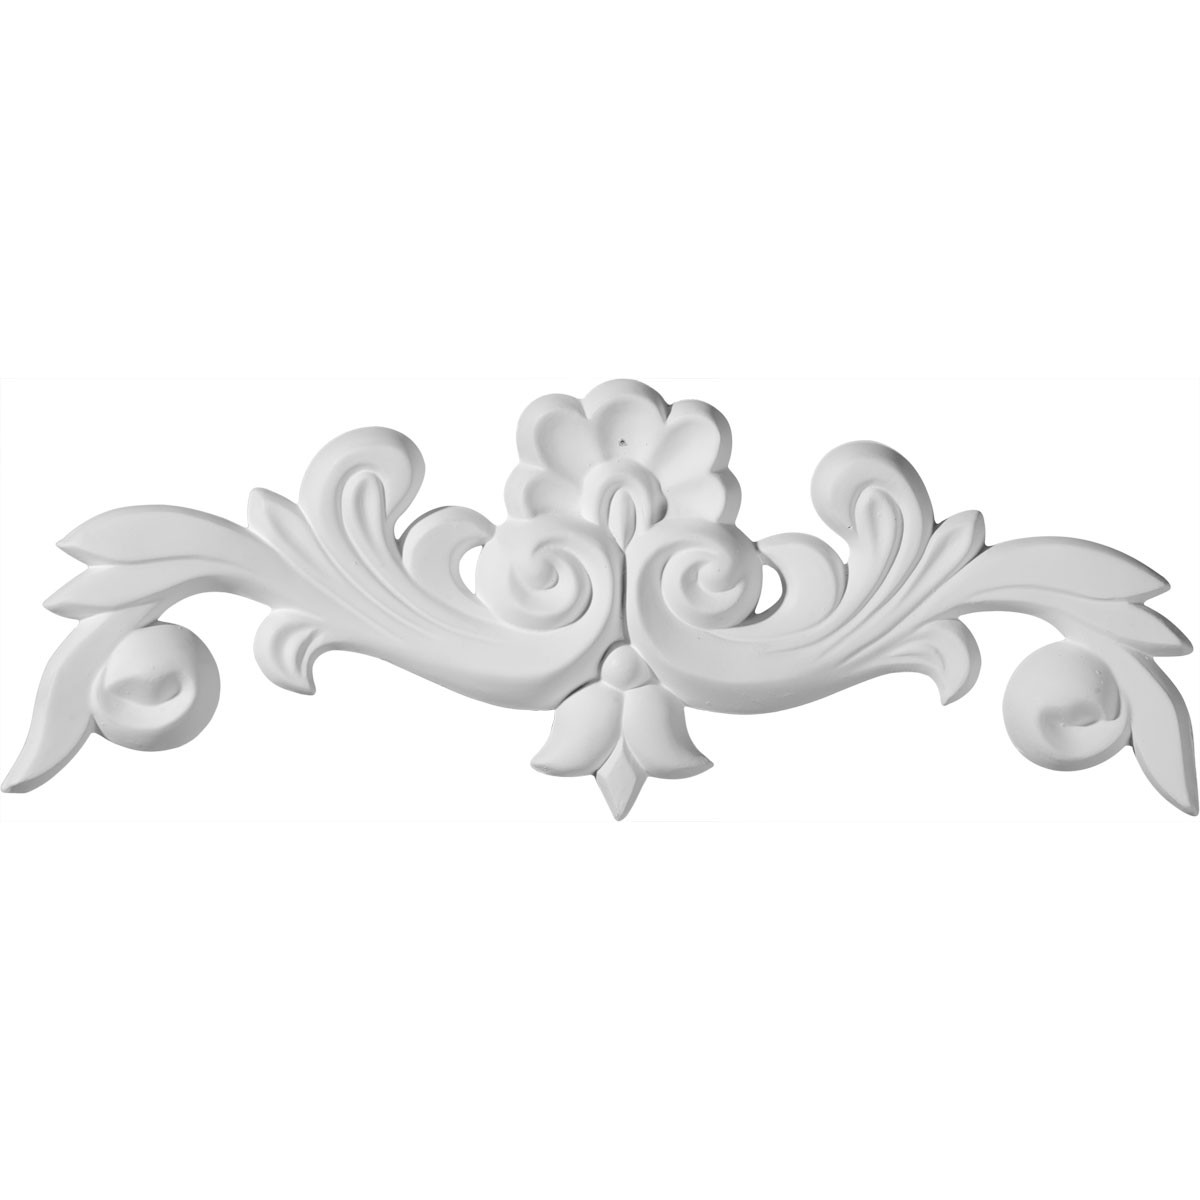 """EM-ONL10X04X01BN - 10 5/8""""W x 3 7/8""""H x 5/8""""P Benson Flowing Leaves Center with Scrolls Onlay"""